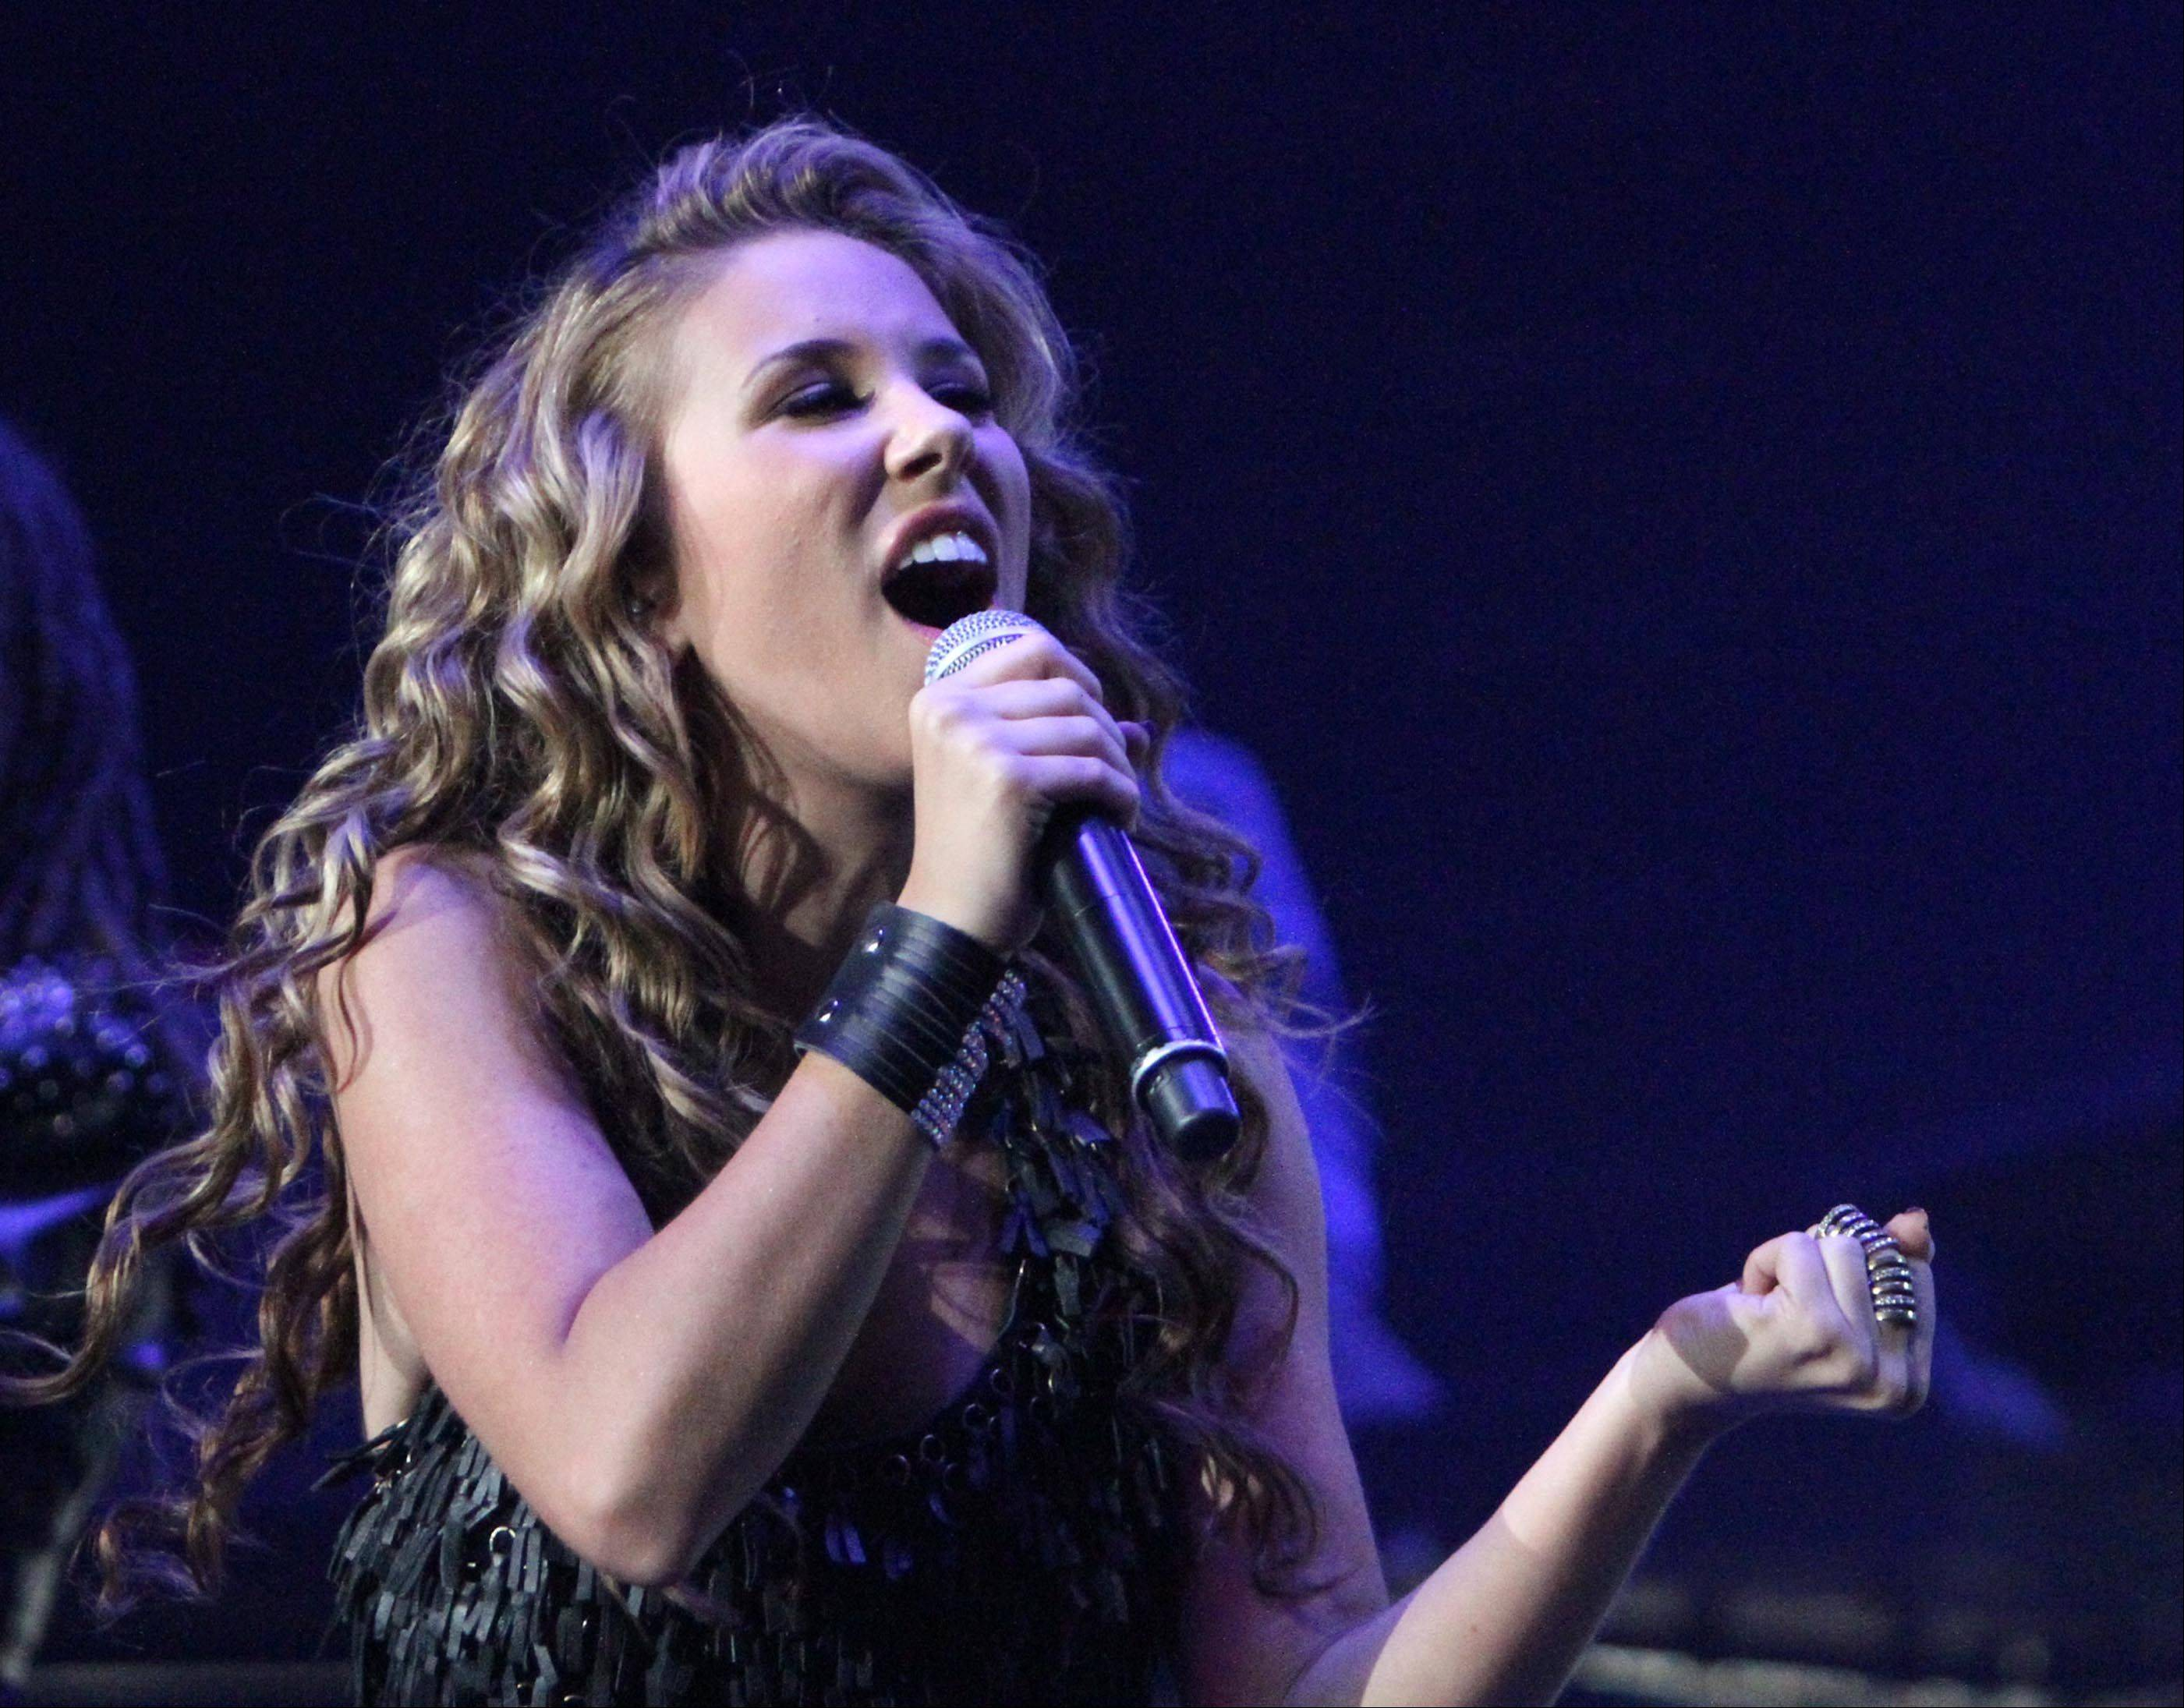 Haley Reinhart performs during the American Idol concert at Allstate Arena in Rosemont.